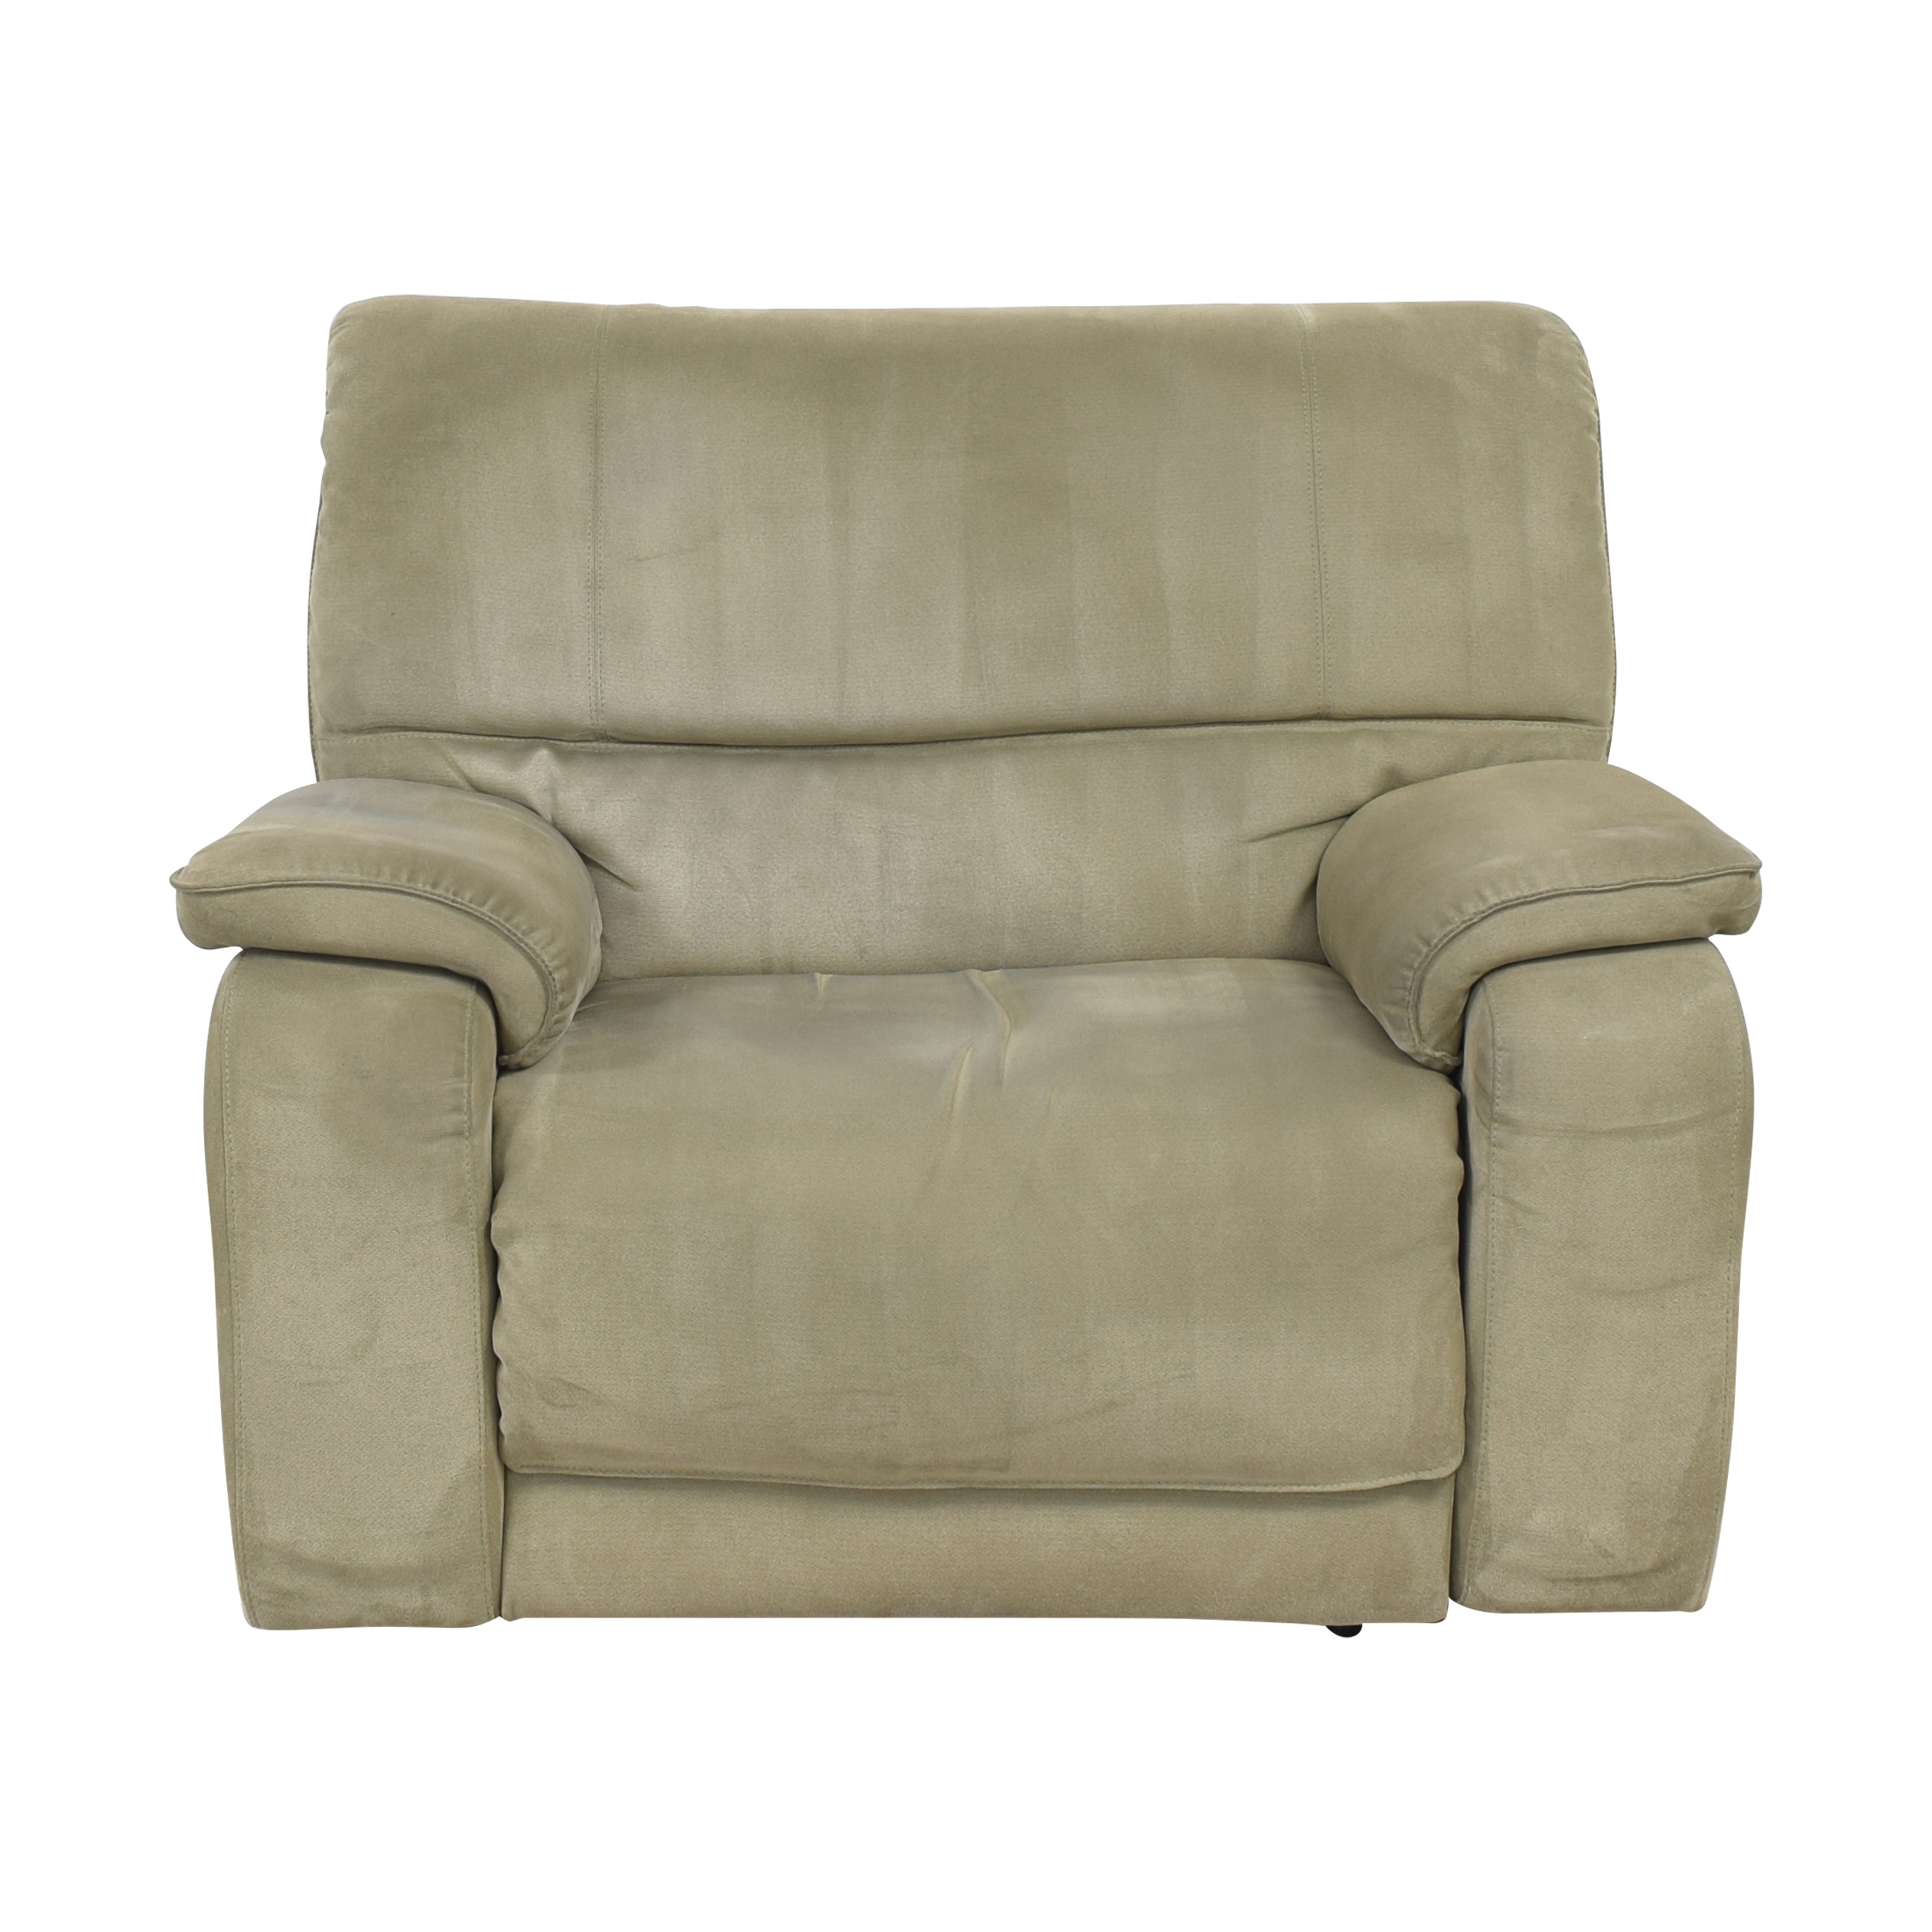 Macy's Macy's Oversized Recliner ct